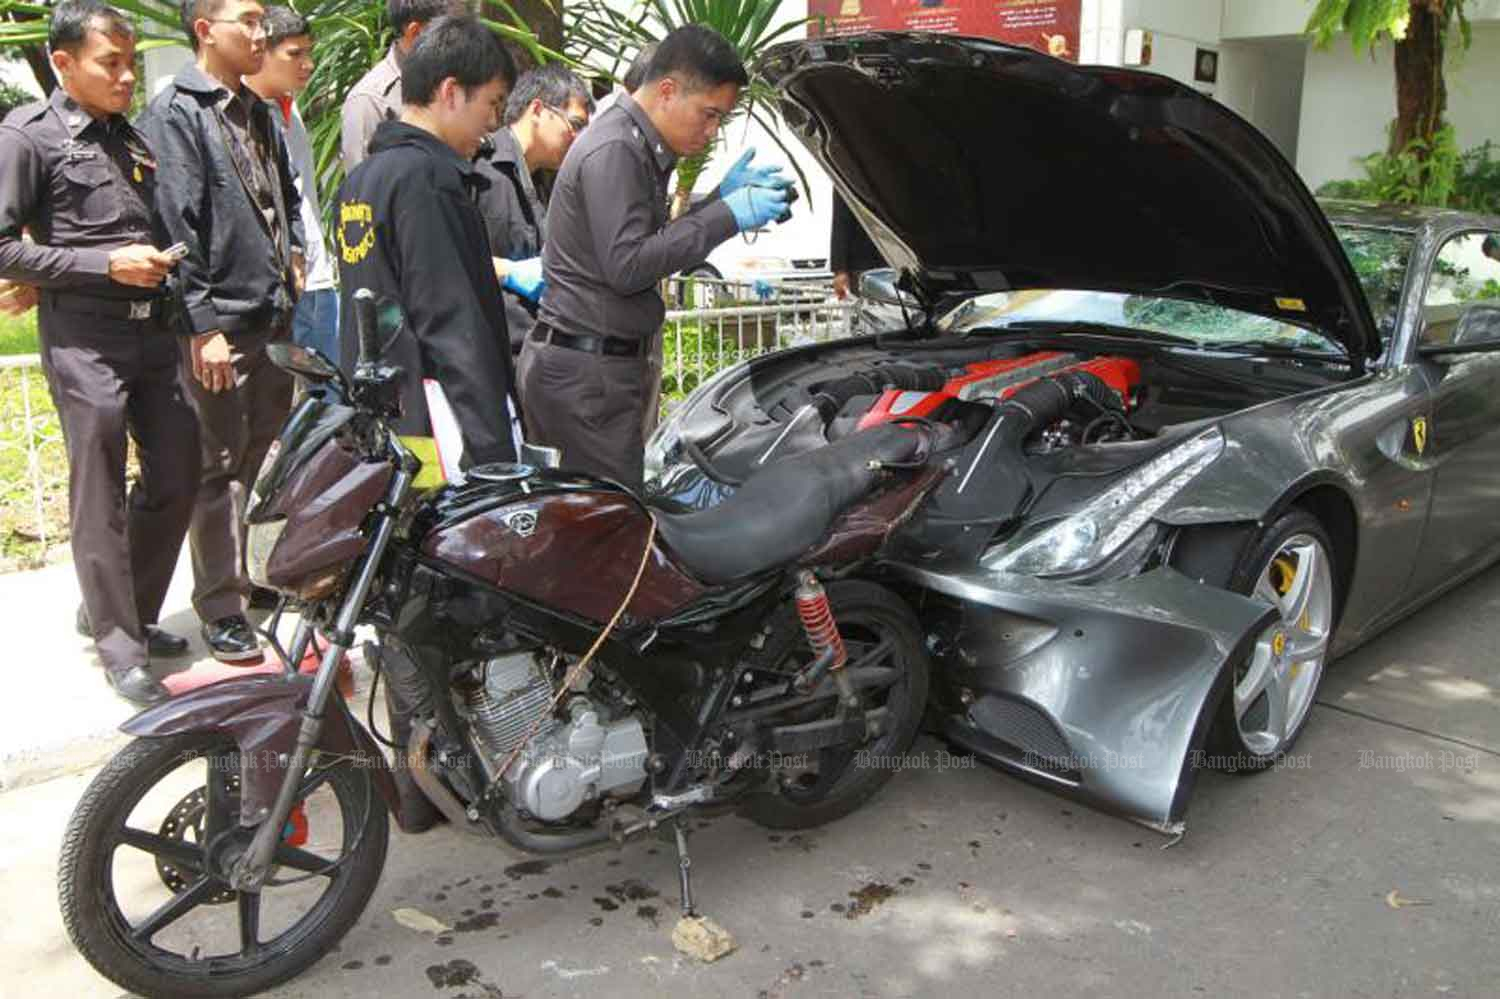 Forensic police fit the motorcycle belonging to Pol Snr Sgt Maj Wichian Klanprasert of Thong Lor police station to the damage caused to the Ferrari driven by Vorayuth Yoovidhya, after the accident on Sept 3, 2012. (File photo)